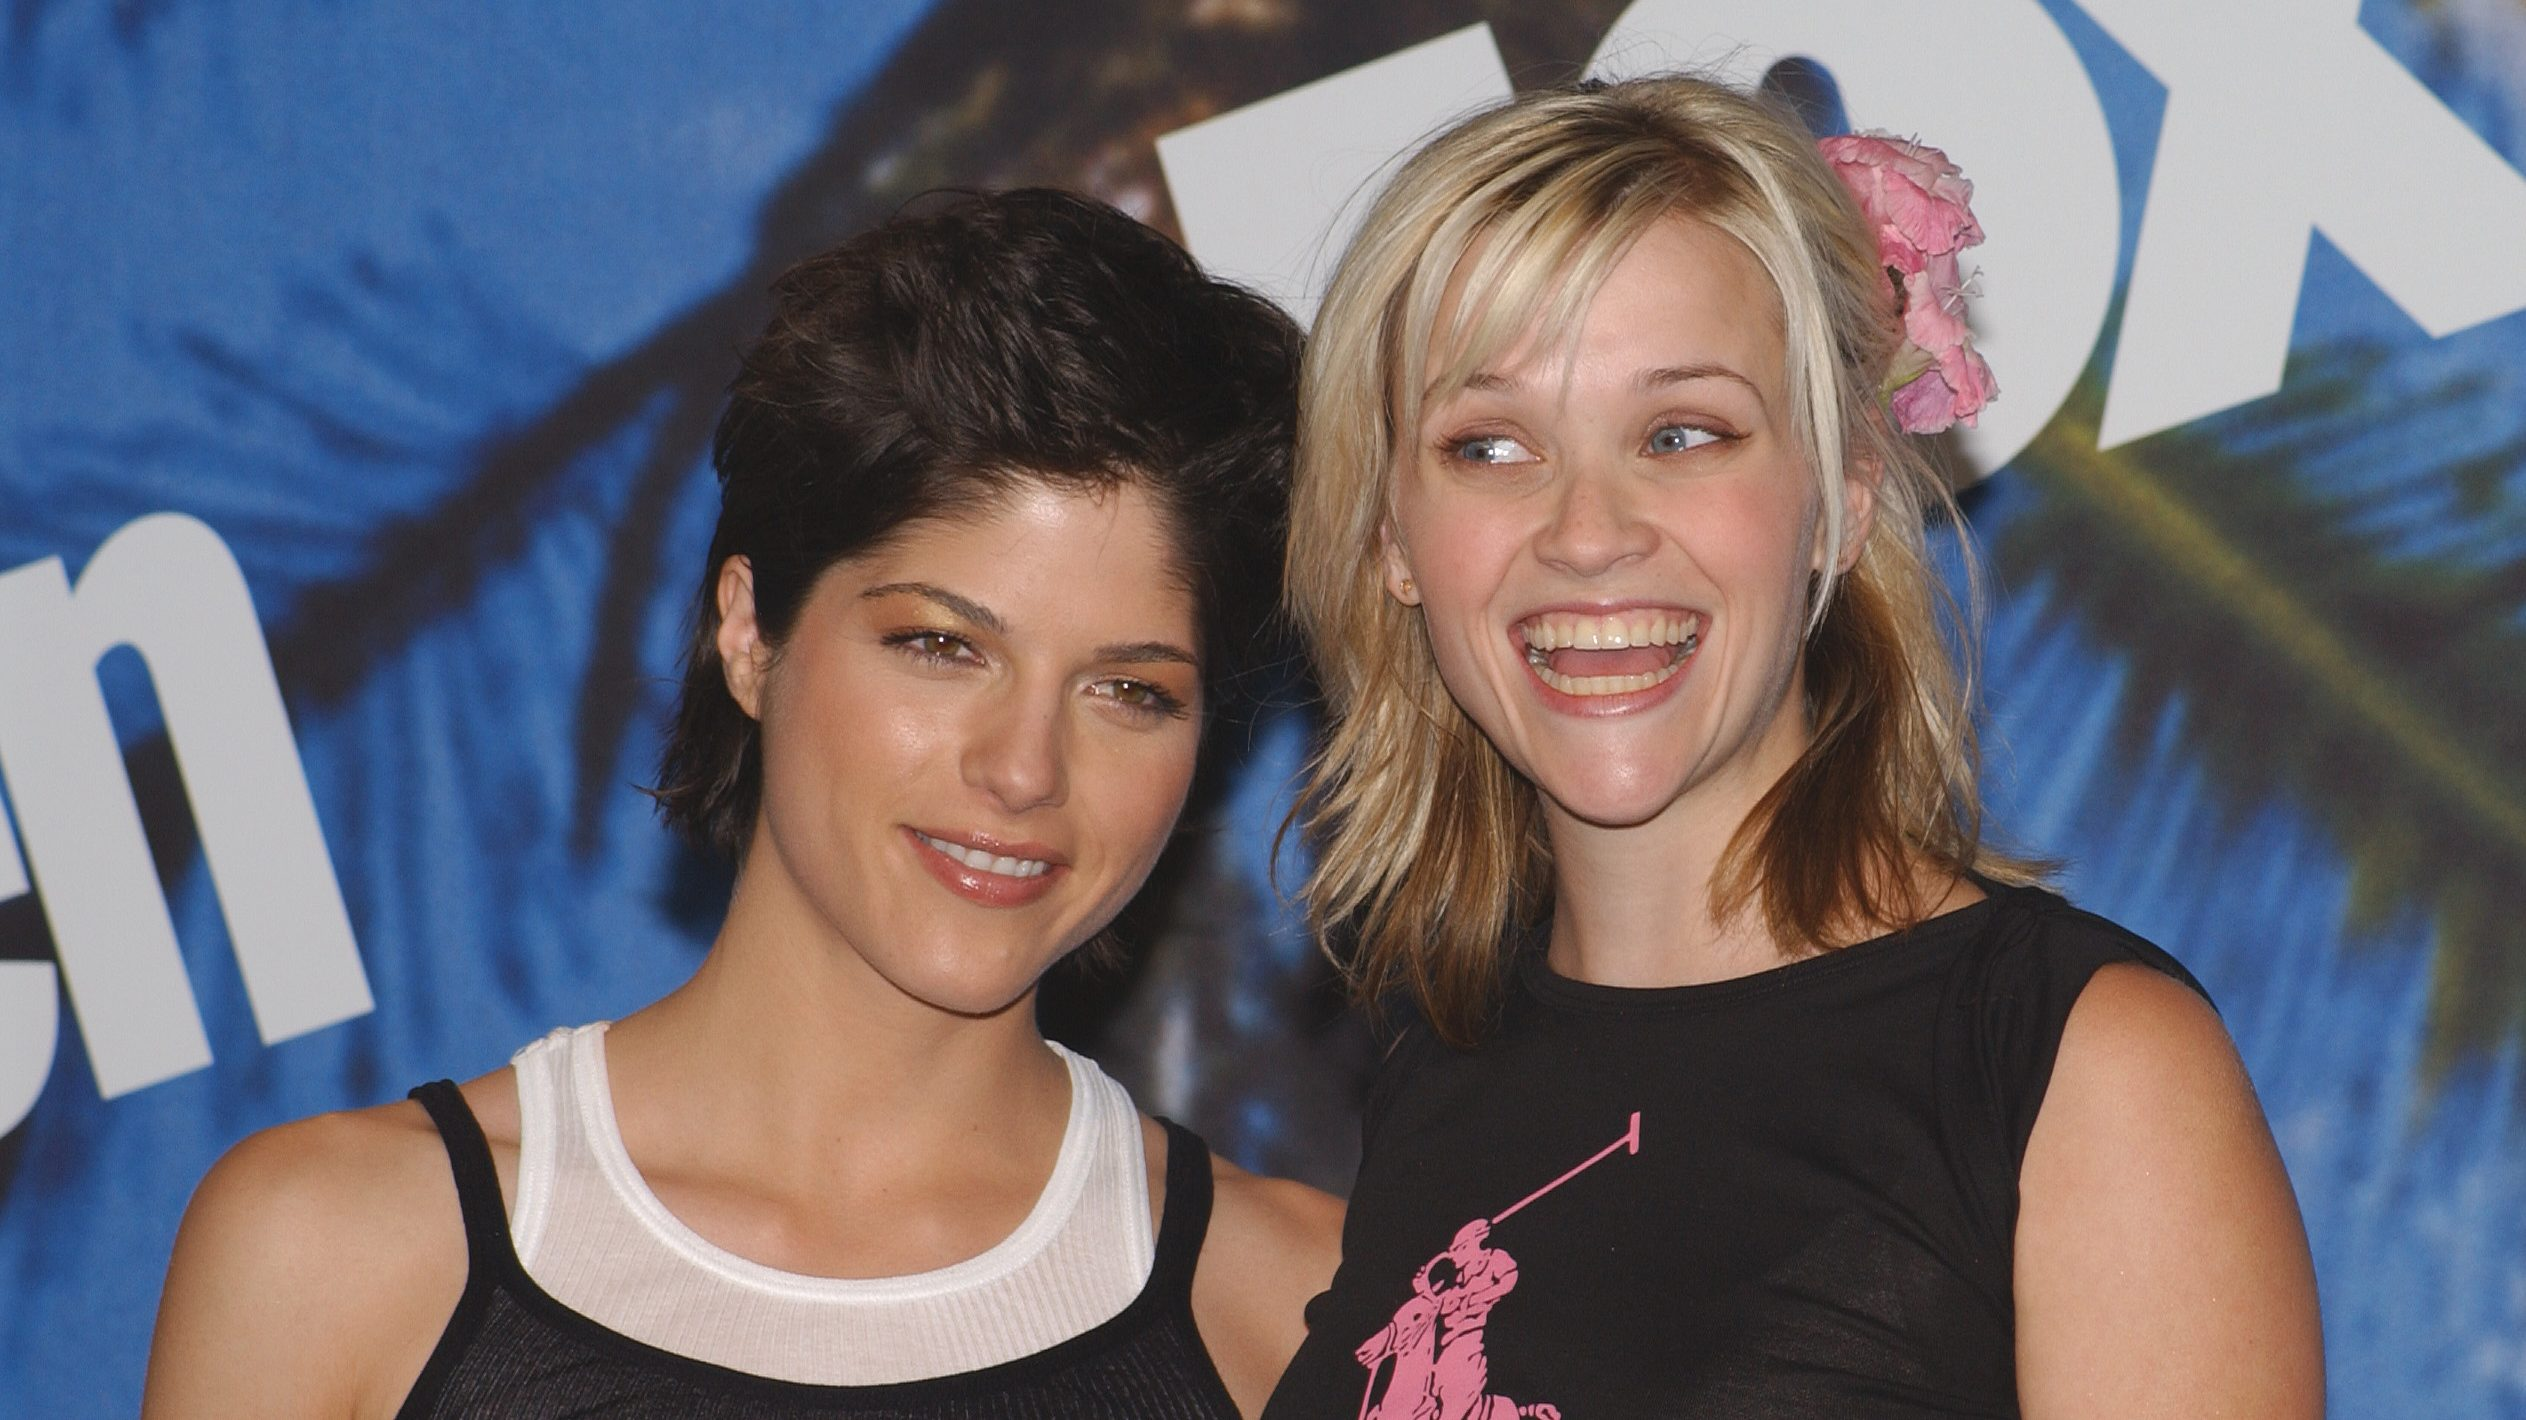 Wow!Reese Witherspoon Shares Photo With Selma Blair on the 'Cruel Intentions' Set 20 Years Ago